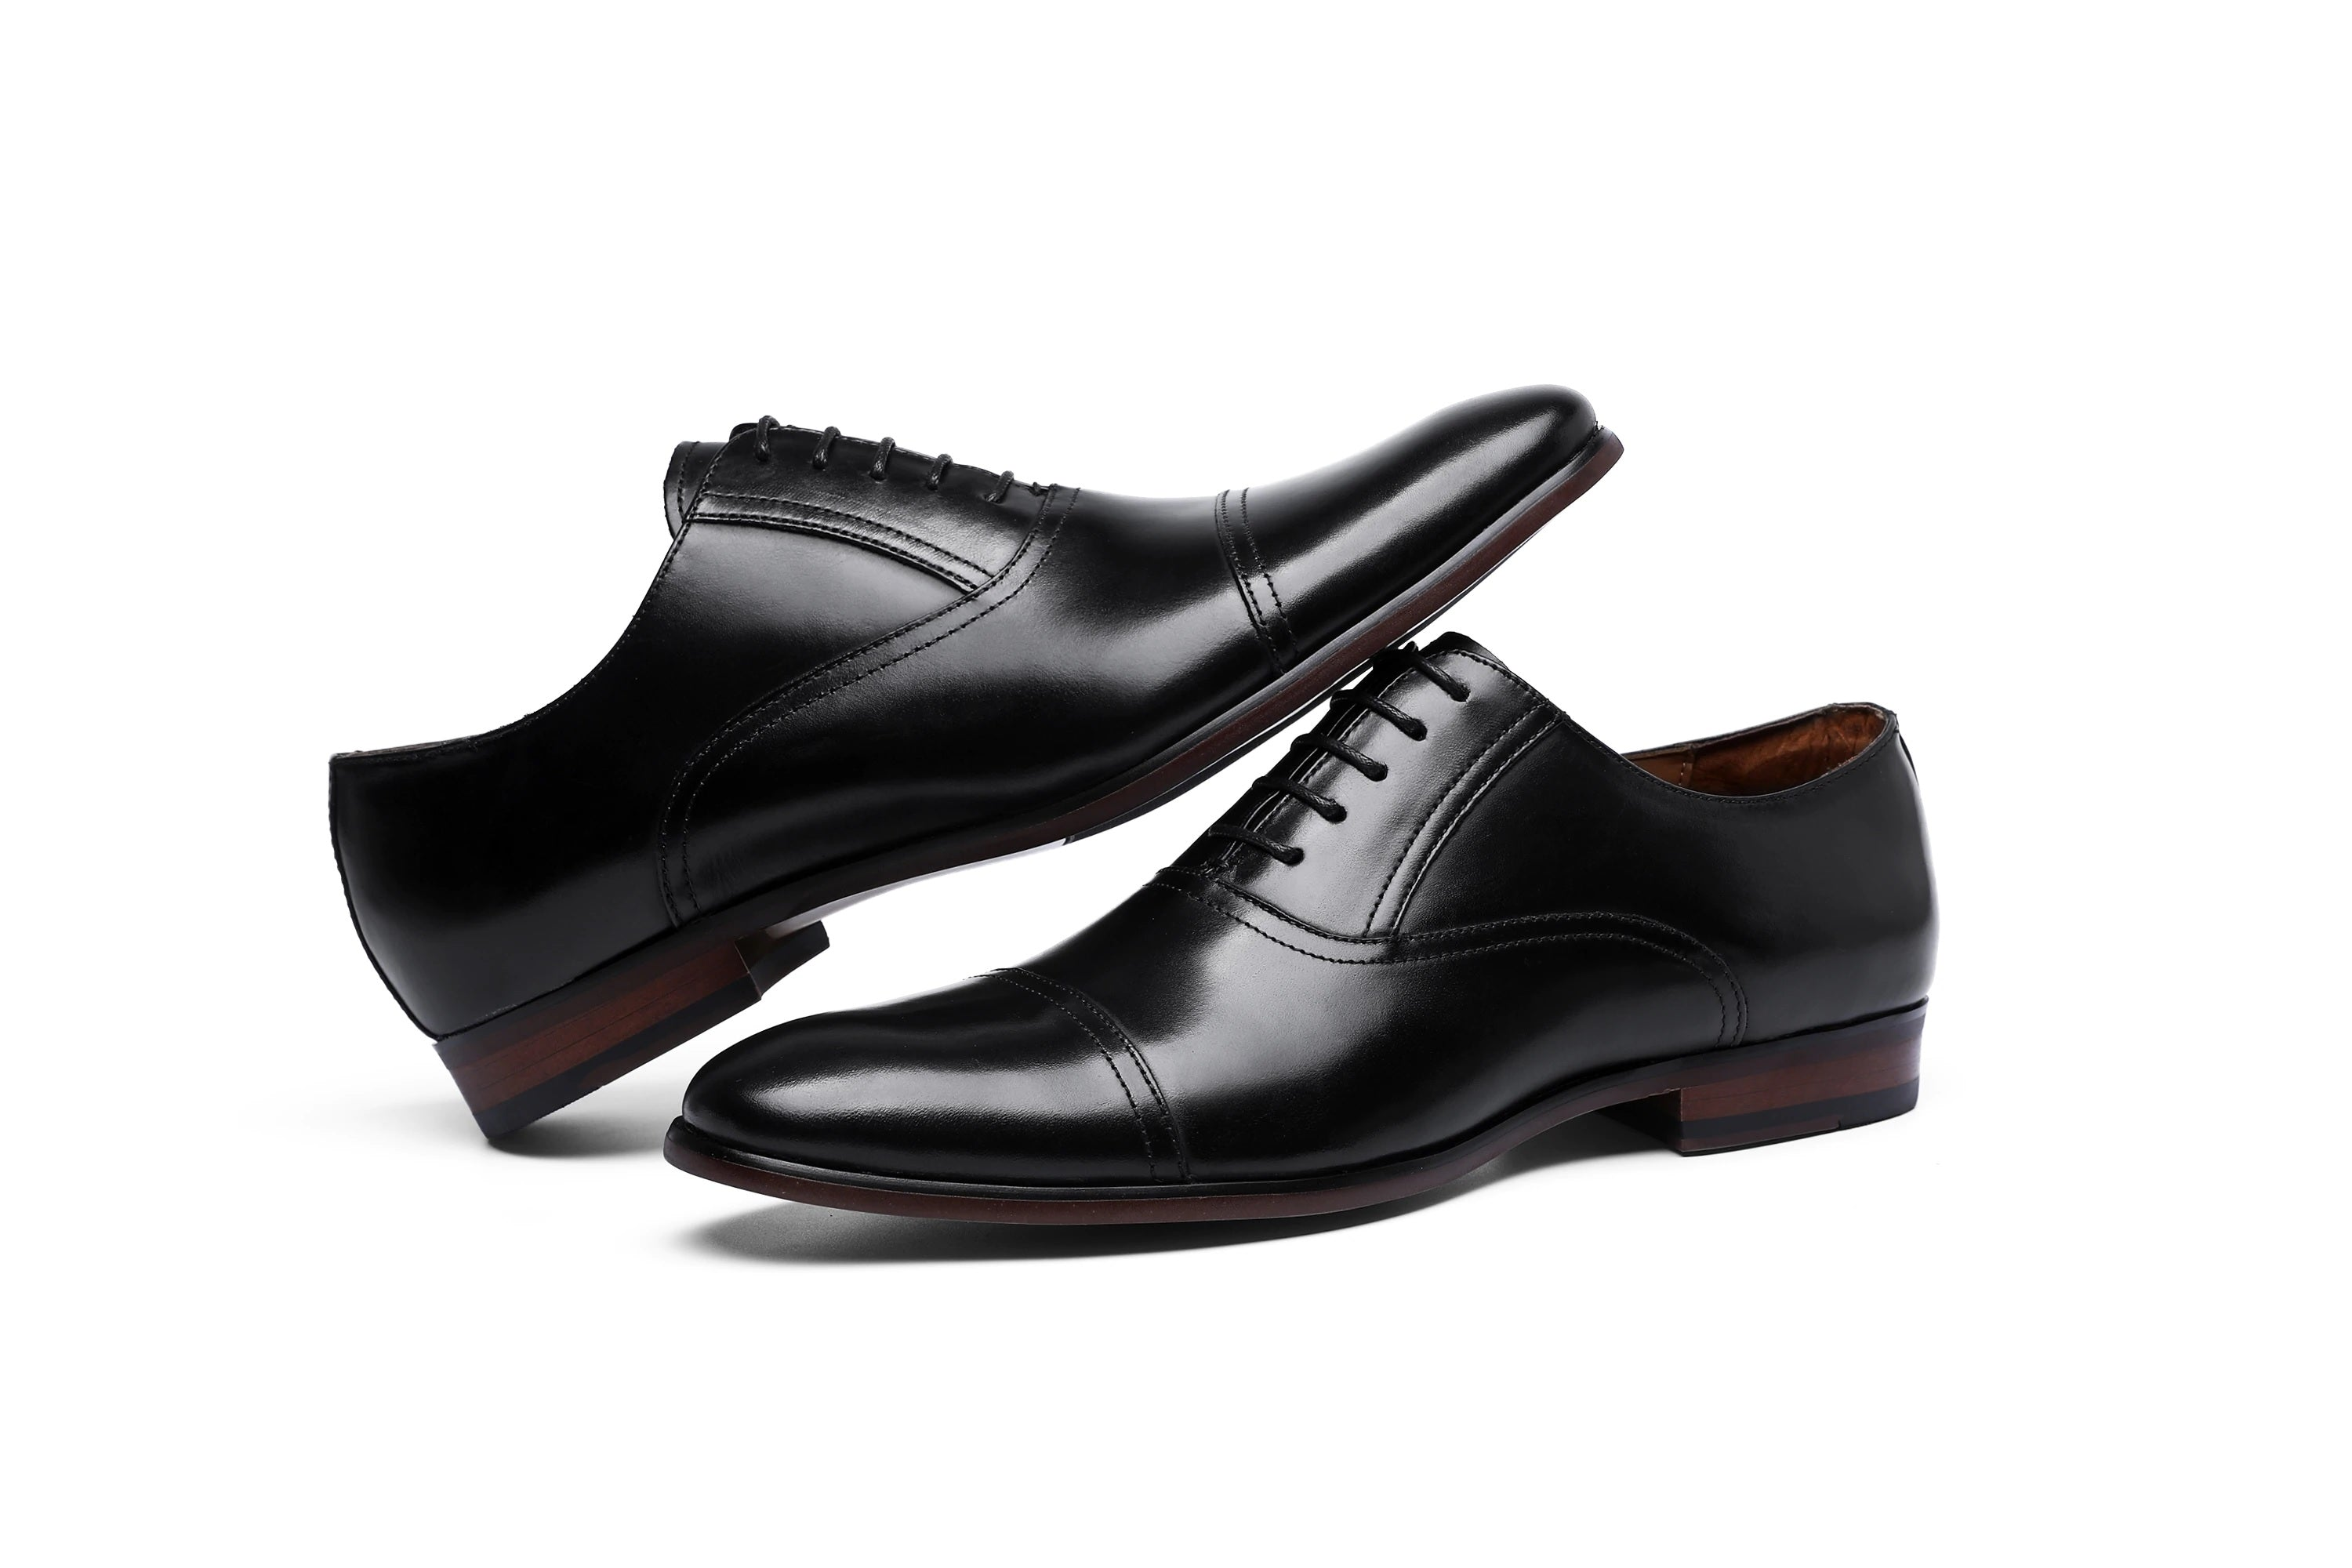 DESAI Brand Full Grain Genuine Leather Business Men Dress Shoes Retro Patent Leather Oxford Shoes For Men EU Size 38-47 - Lordlys-Imperials